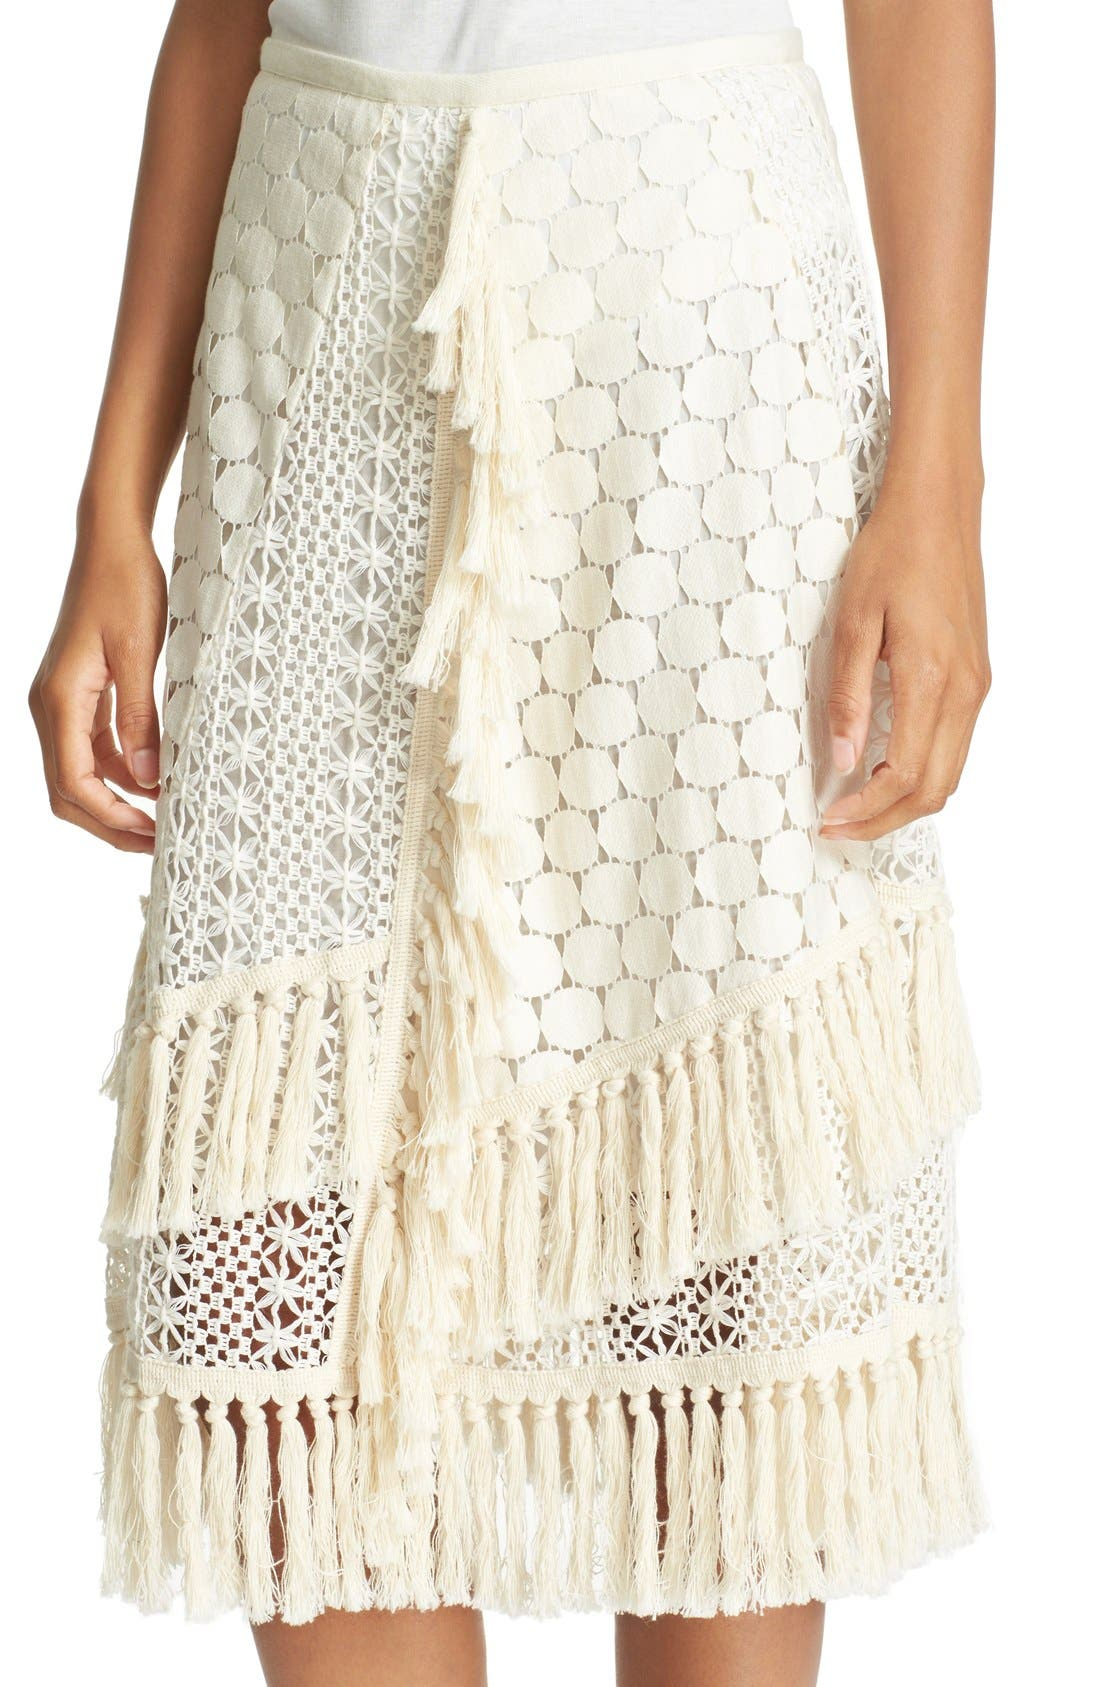 SEE BY CHLOÉ,                             Lace & Fringe Skirt,                             Alternate thumbnail 5, color,                             900